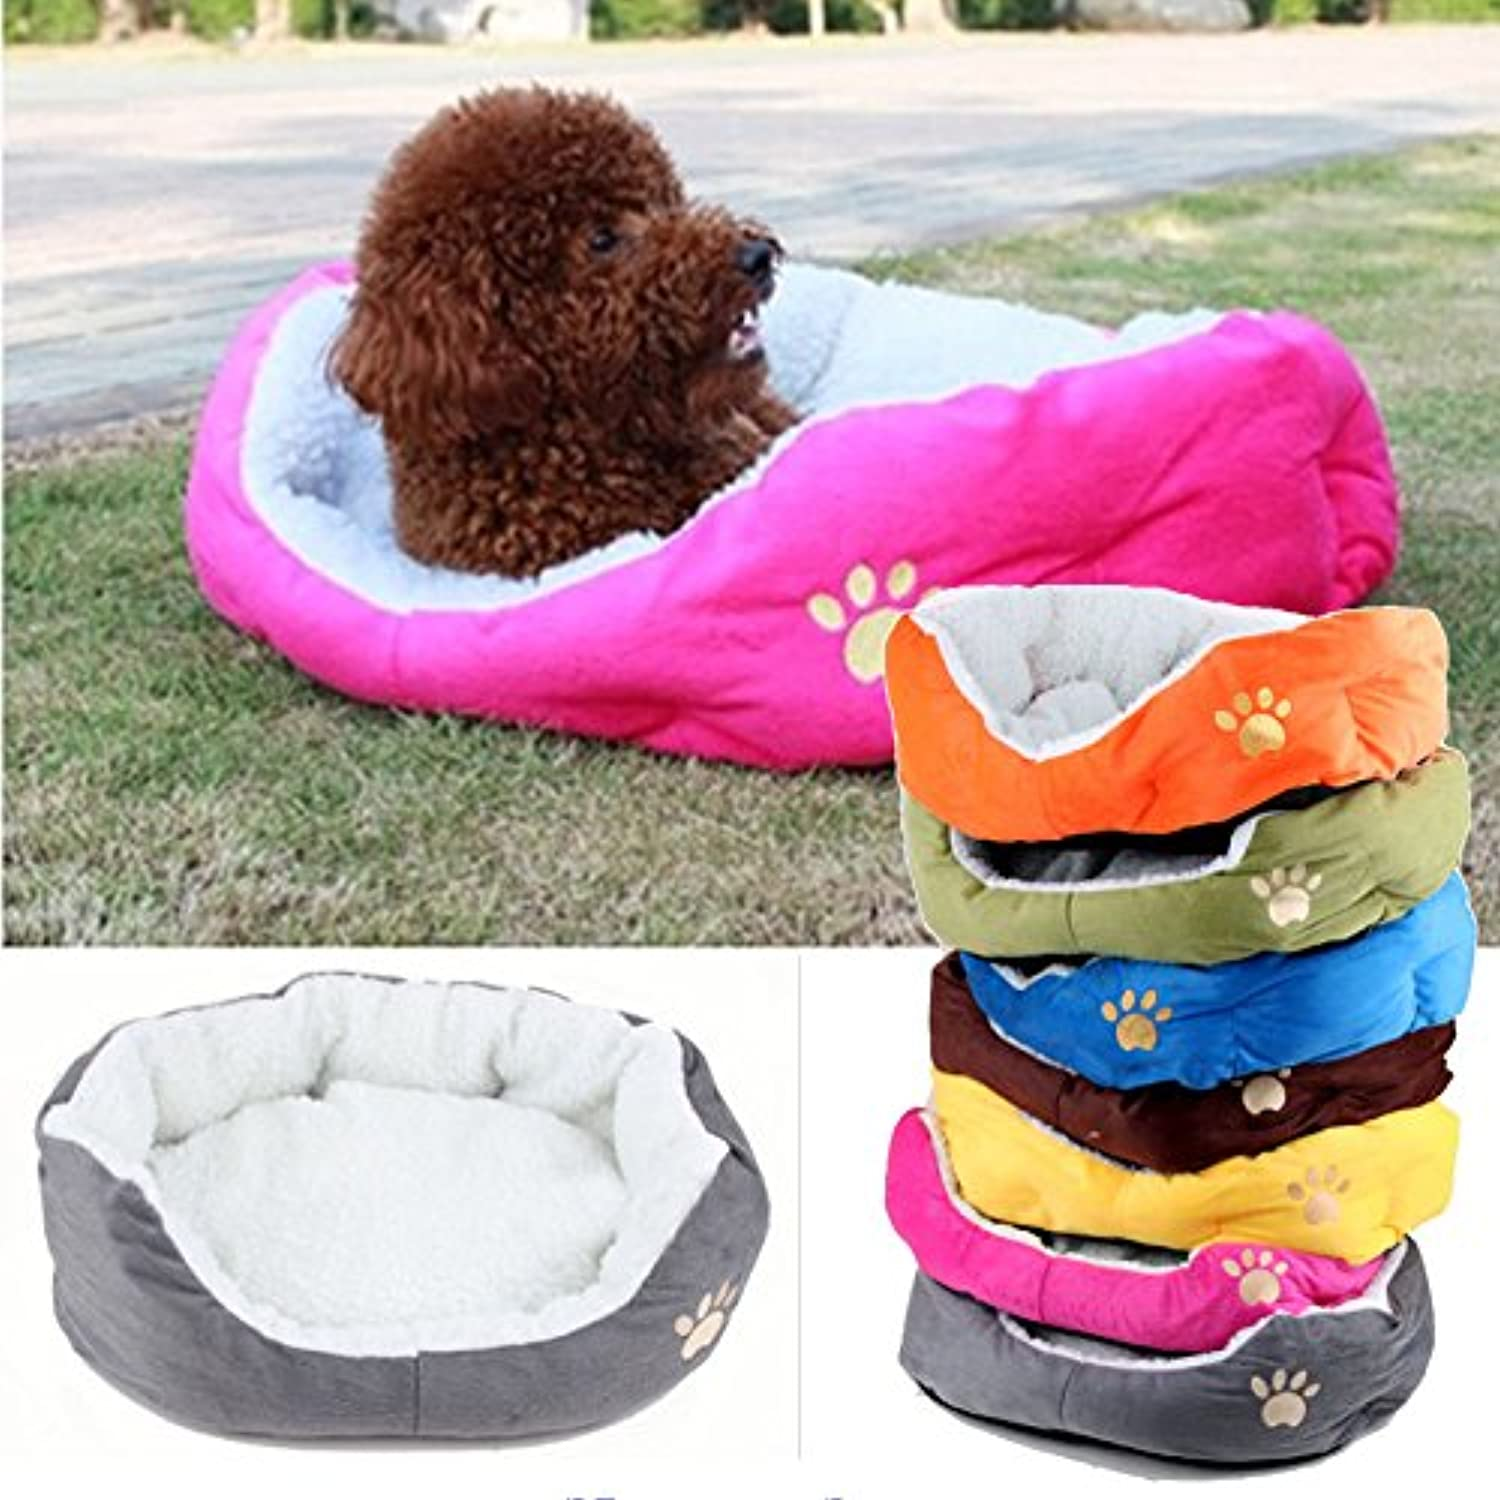 AOBILE(TM)Paw Print Cats Puppy Beds Comfortable Pets Dog Kitten Beddings House Pet Dog Puppy Cat Soft Fleece Bed House Cozy Nest Mat Pad